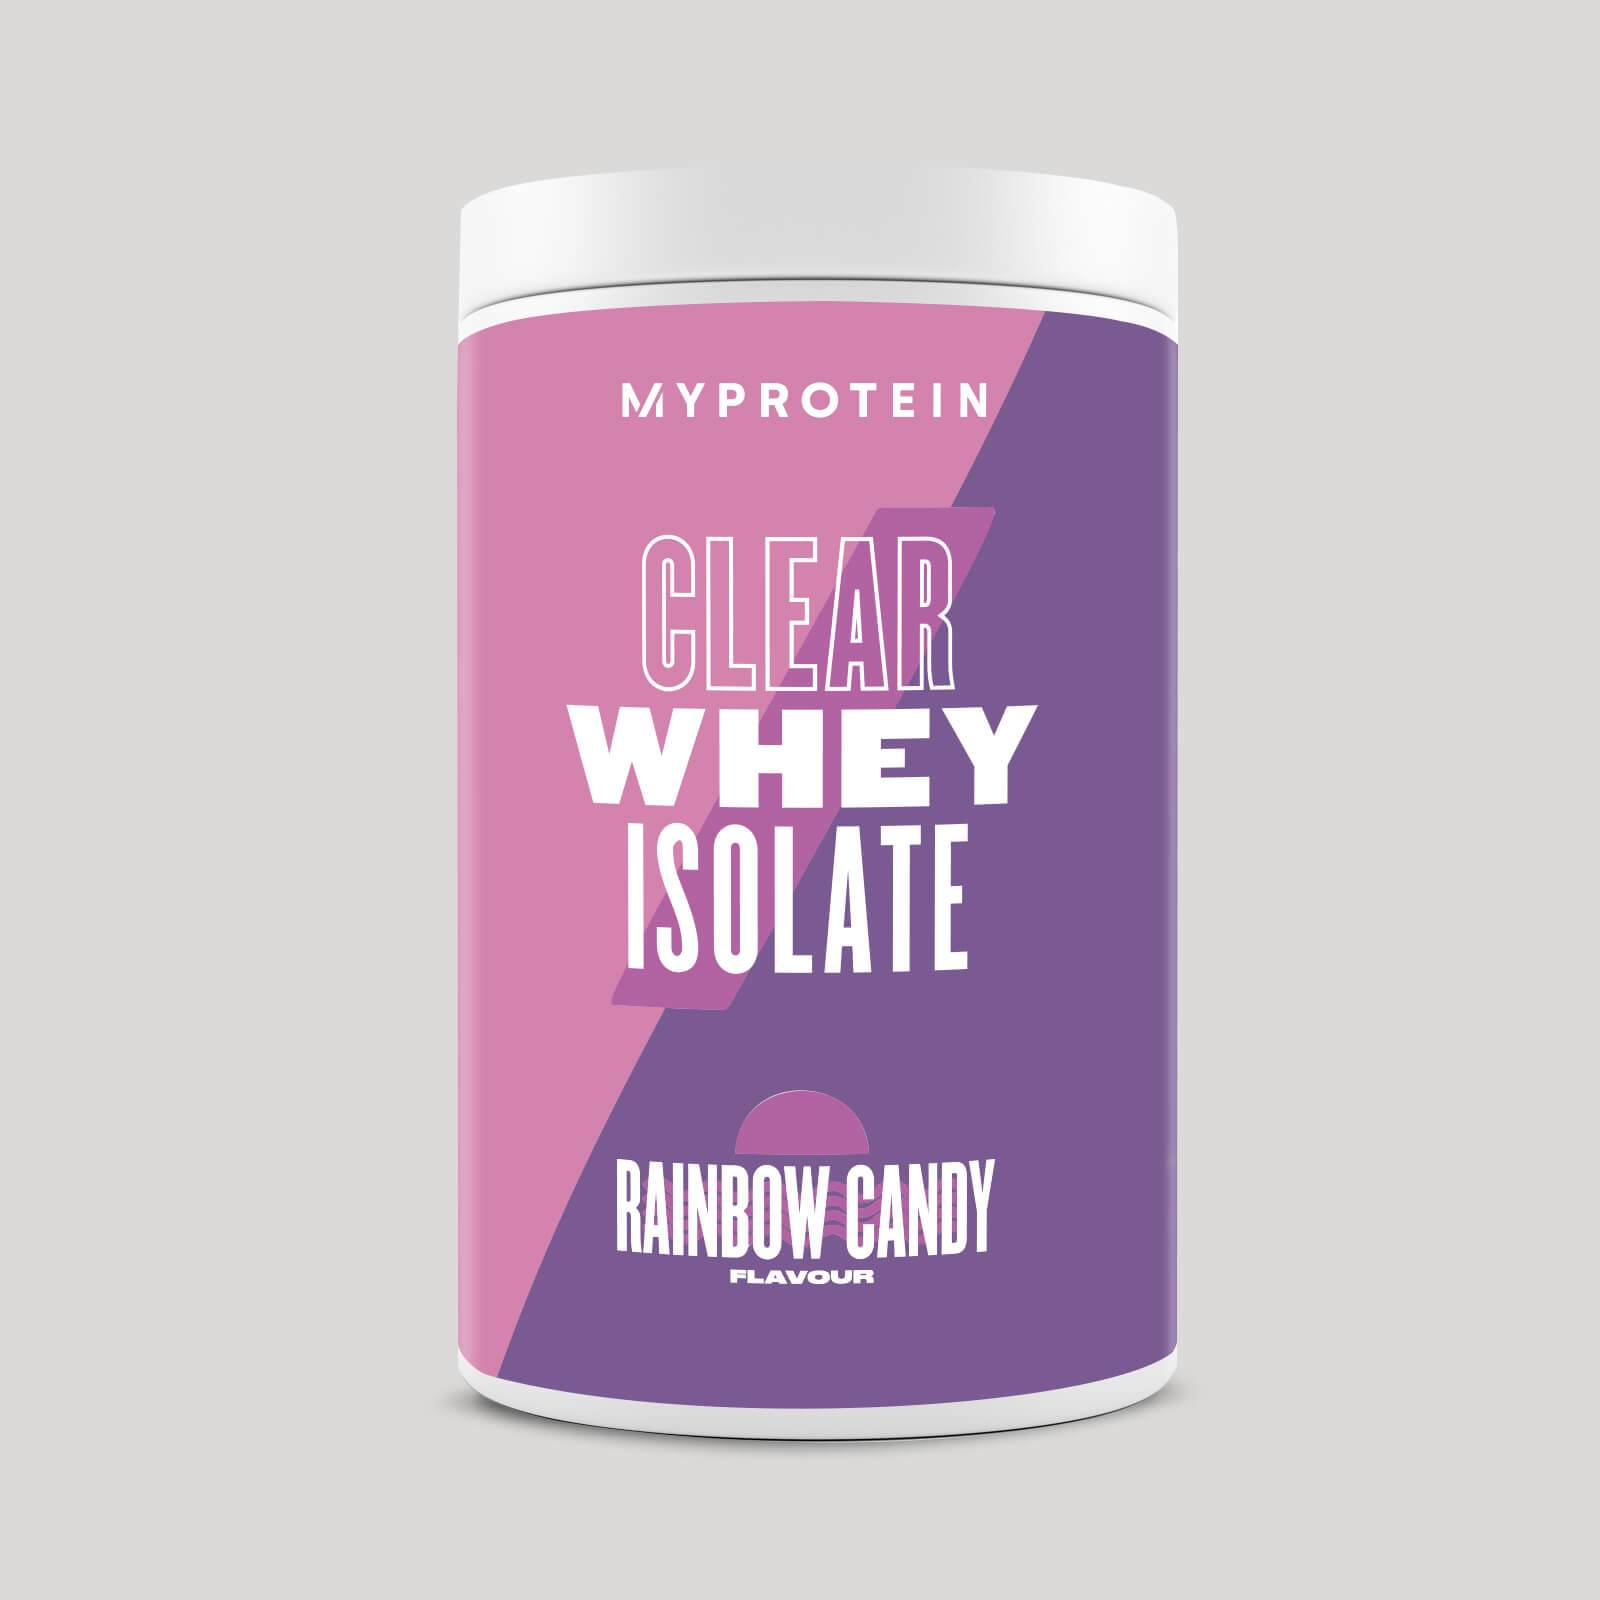 Myprotein Clear Whey Isolate - 20servings - Bonbons